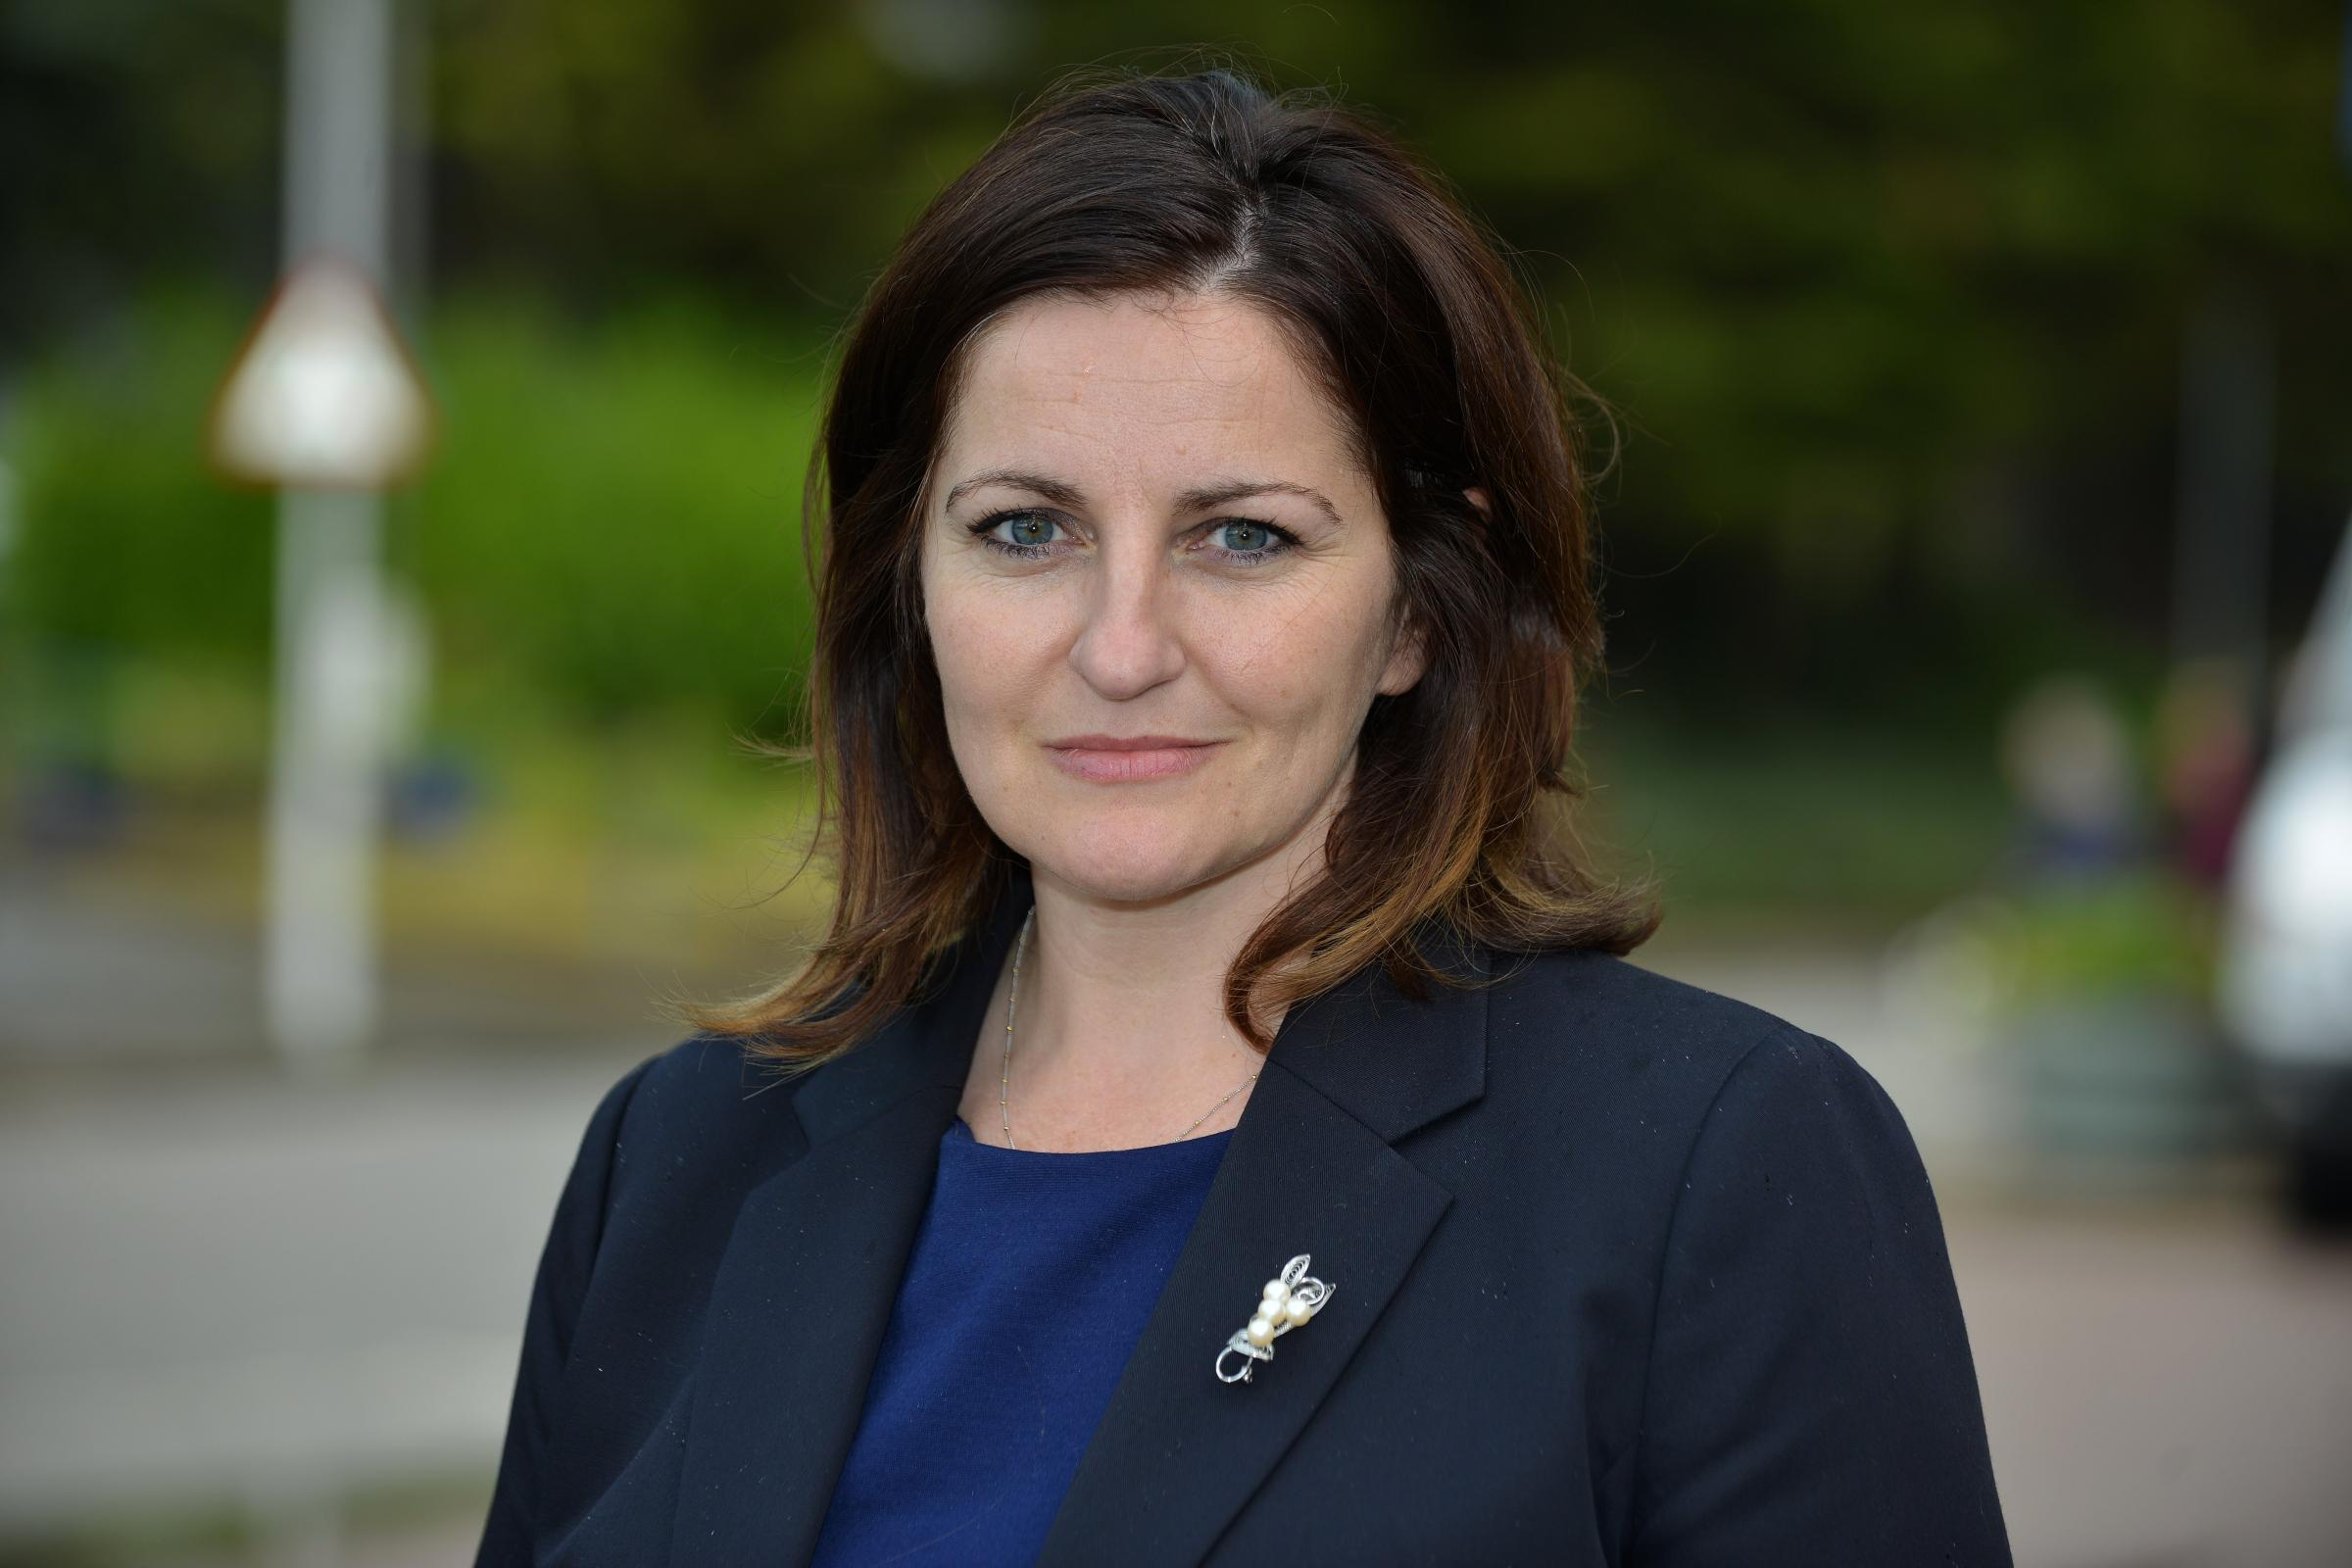 Caroline Ansell MP is not backing government plans for all schools to be made academies and for them to not have parent governors